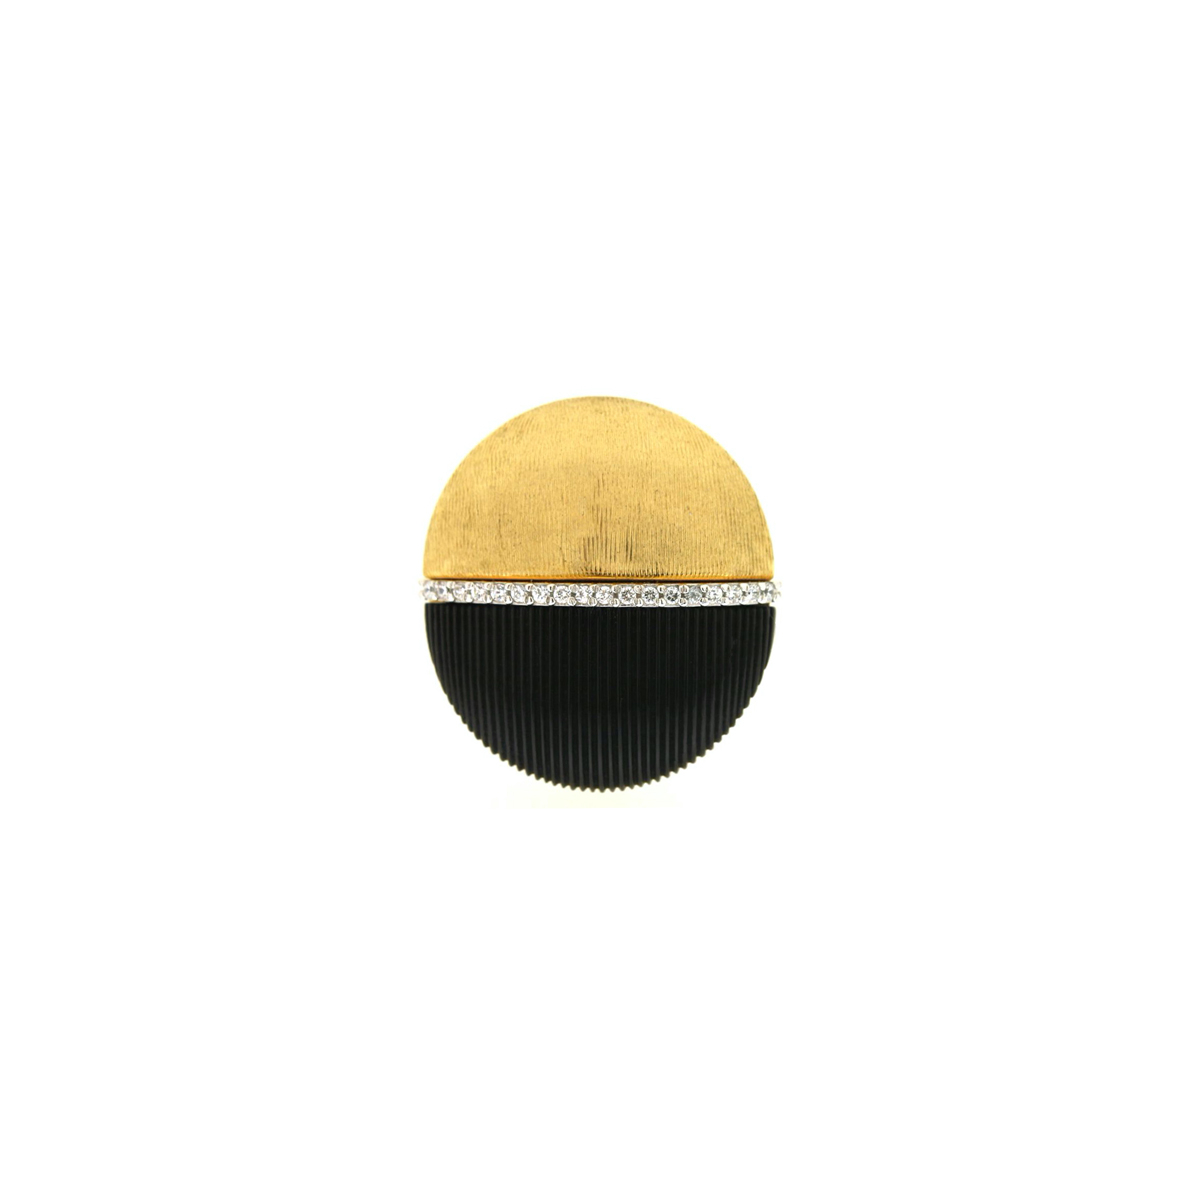 Black and Gold Stud Earrings with Diamonds